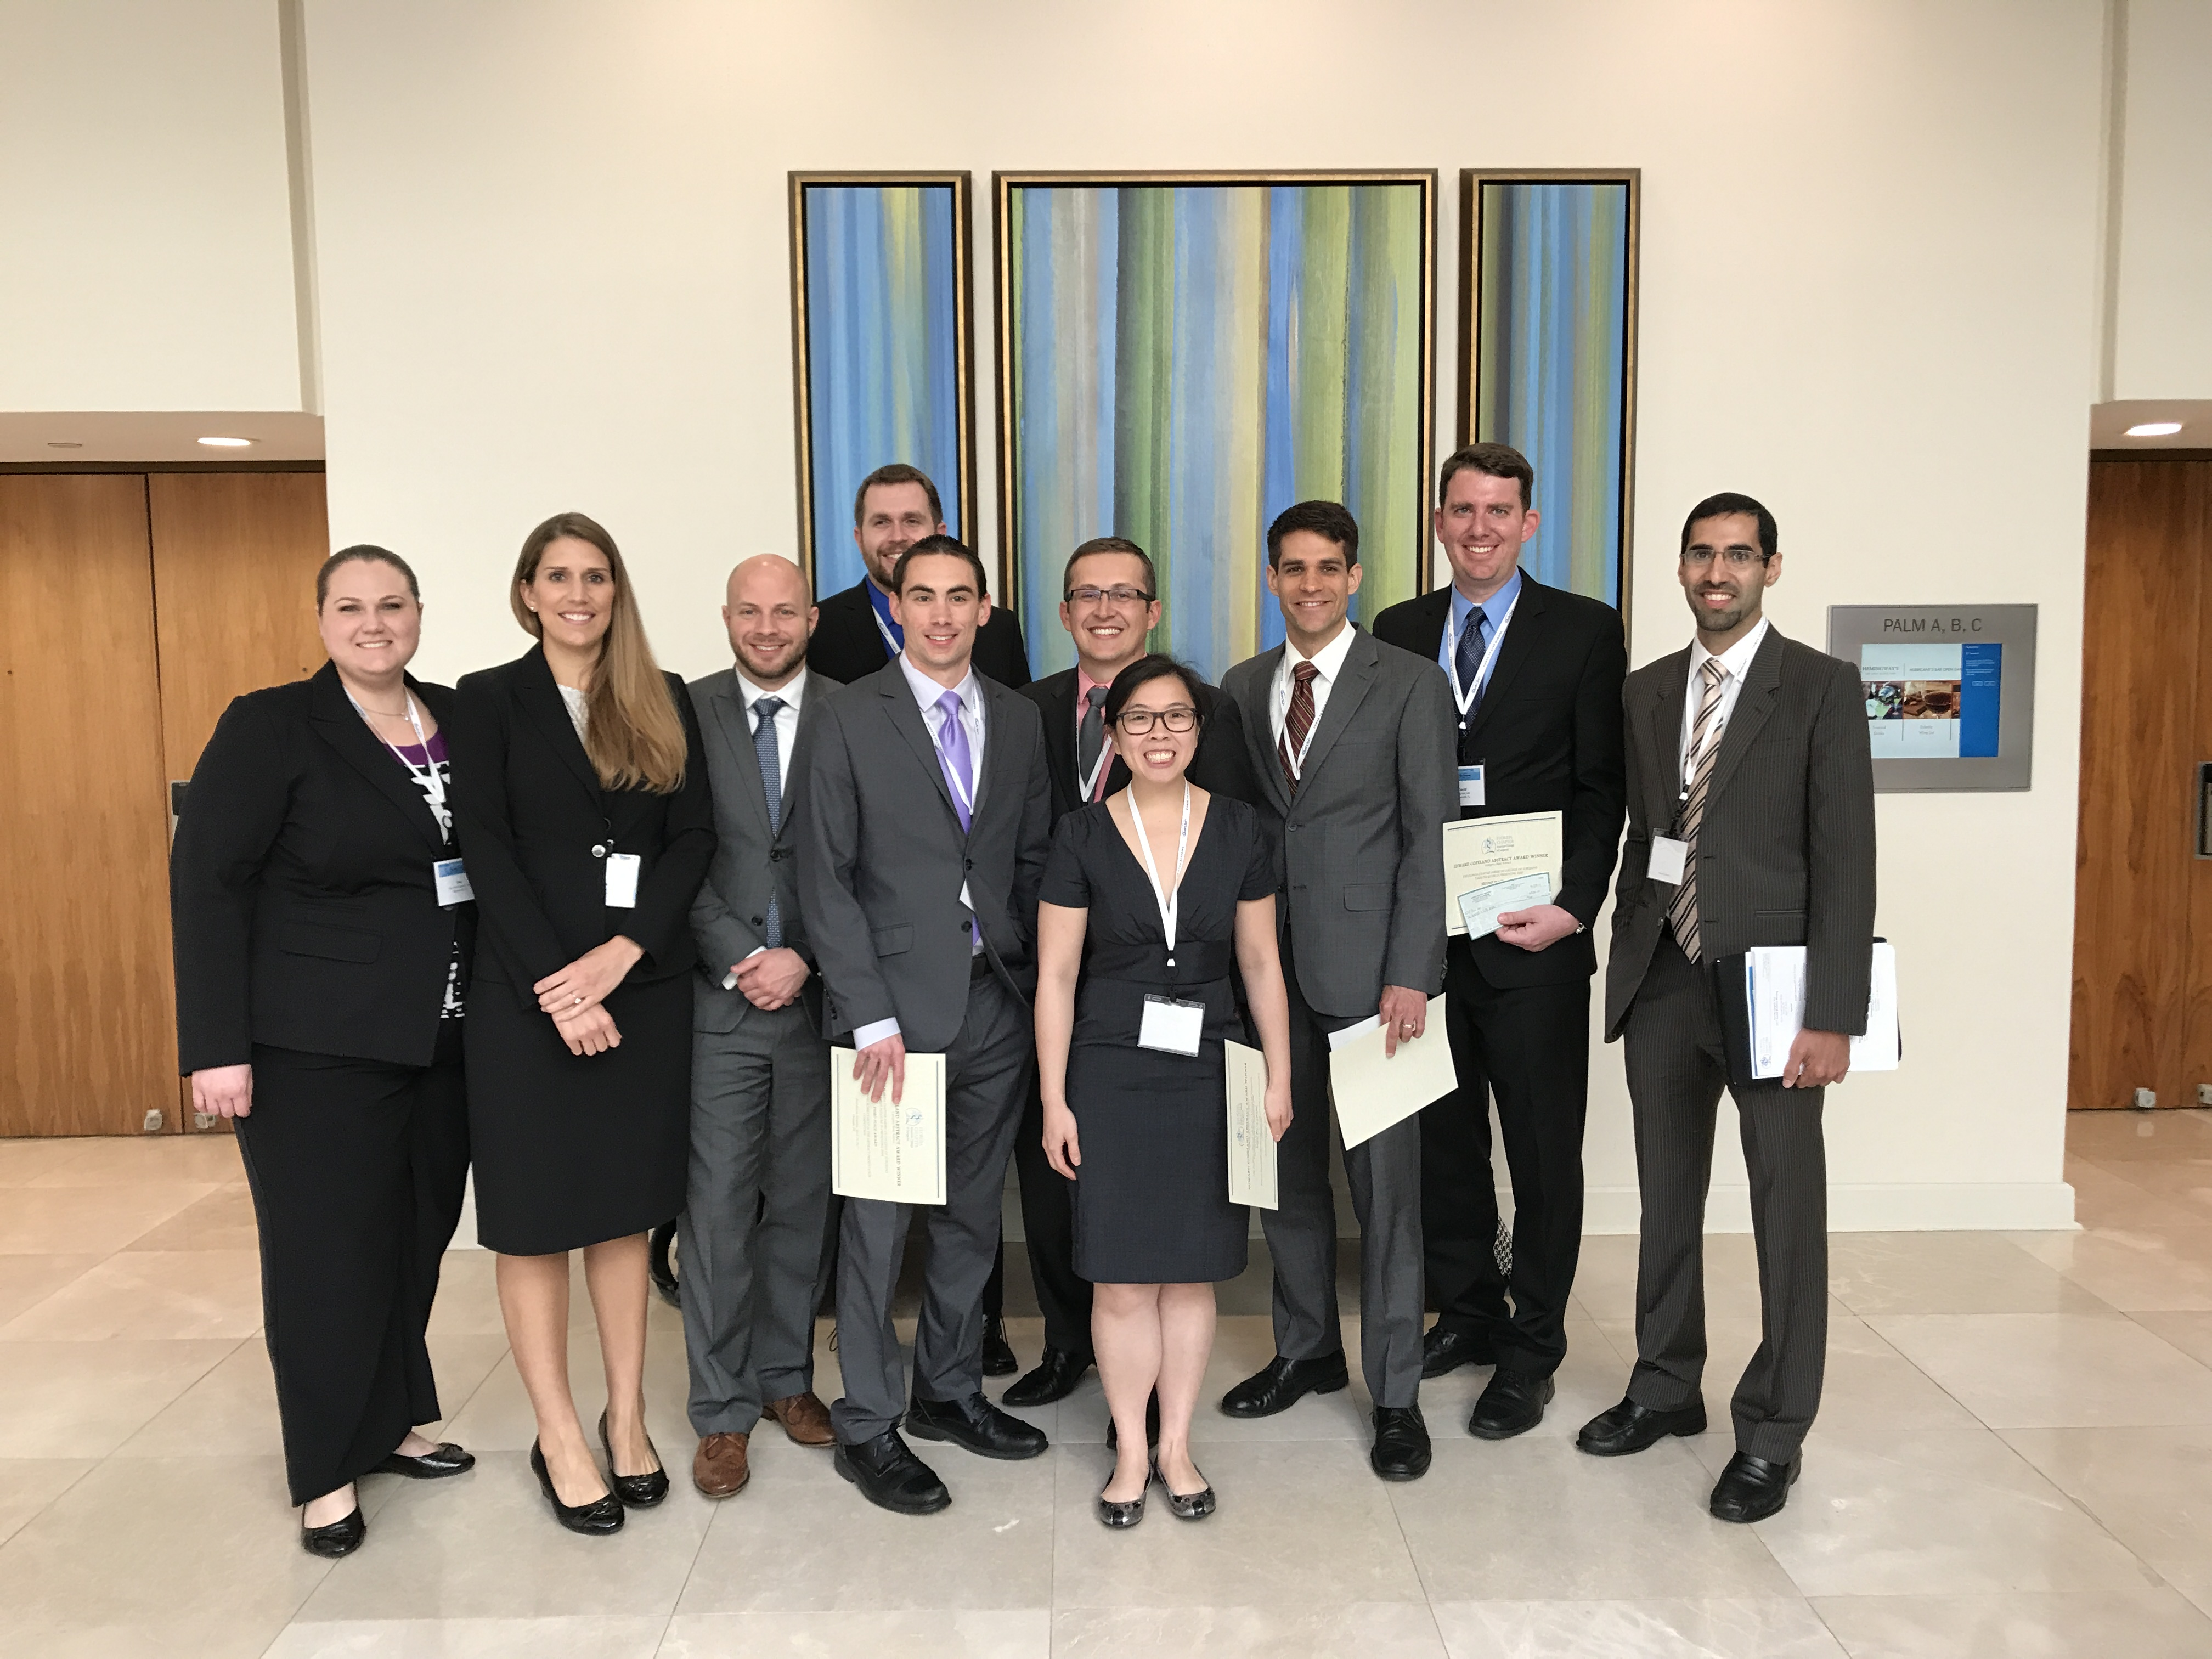 UF College of Medicine surgical residents earn top honors at